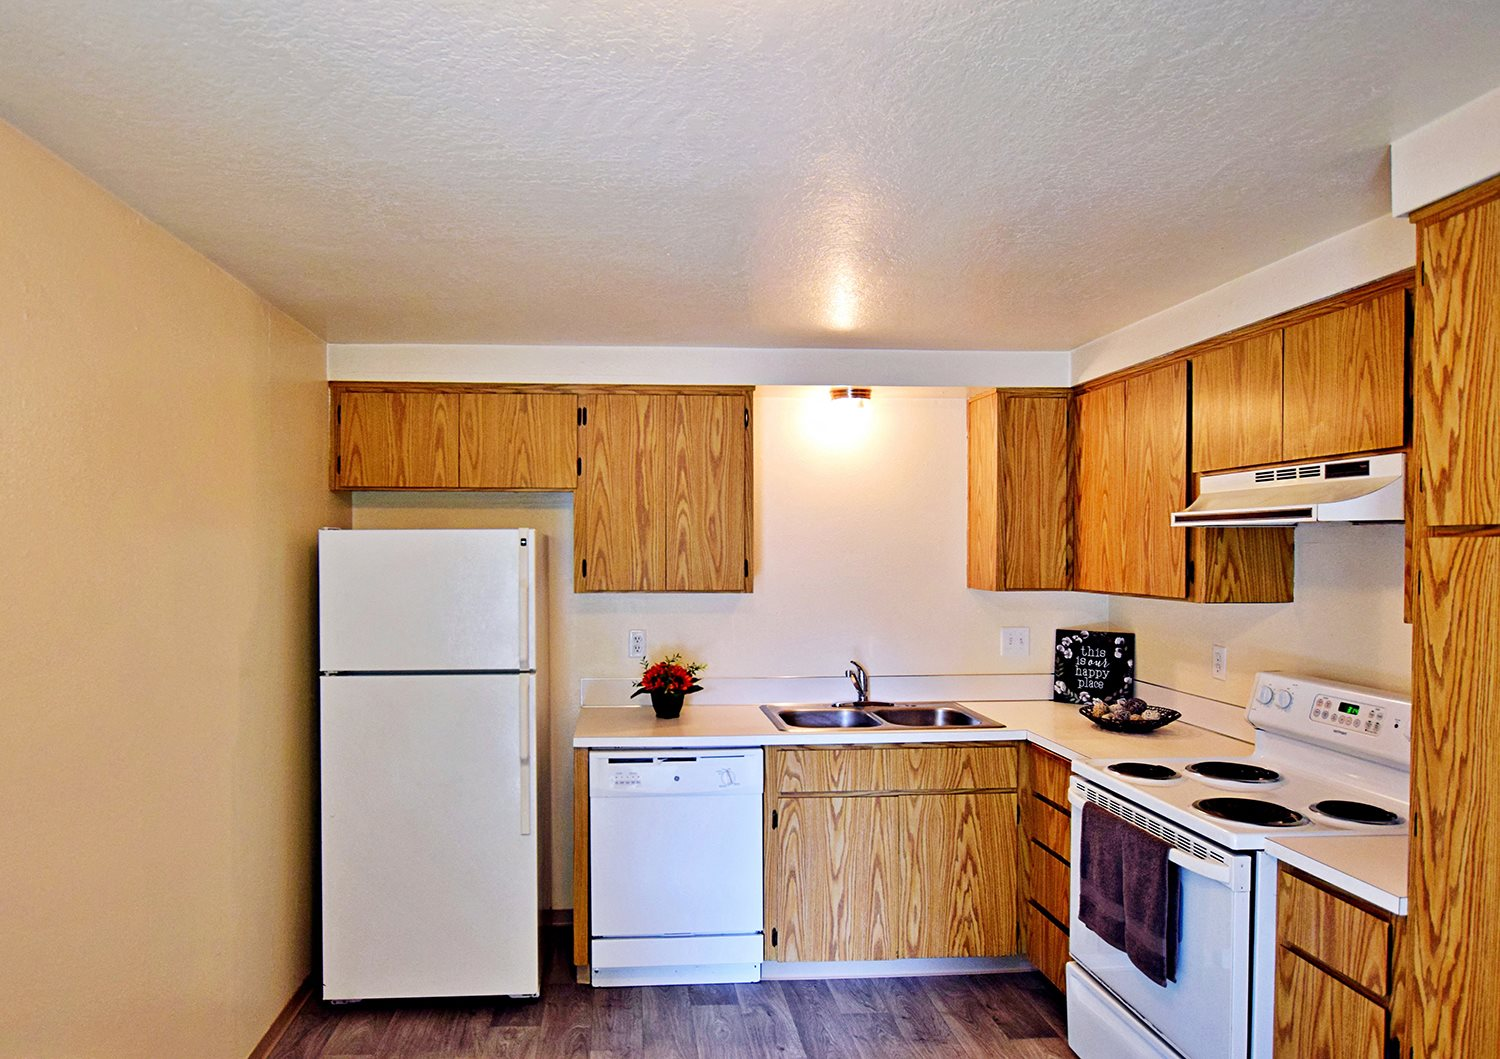 Sequoia Apartments Kitchen Wood Cabinets